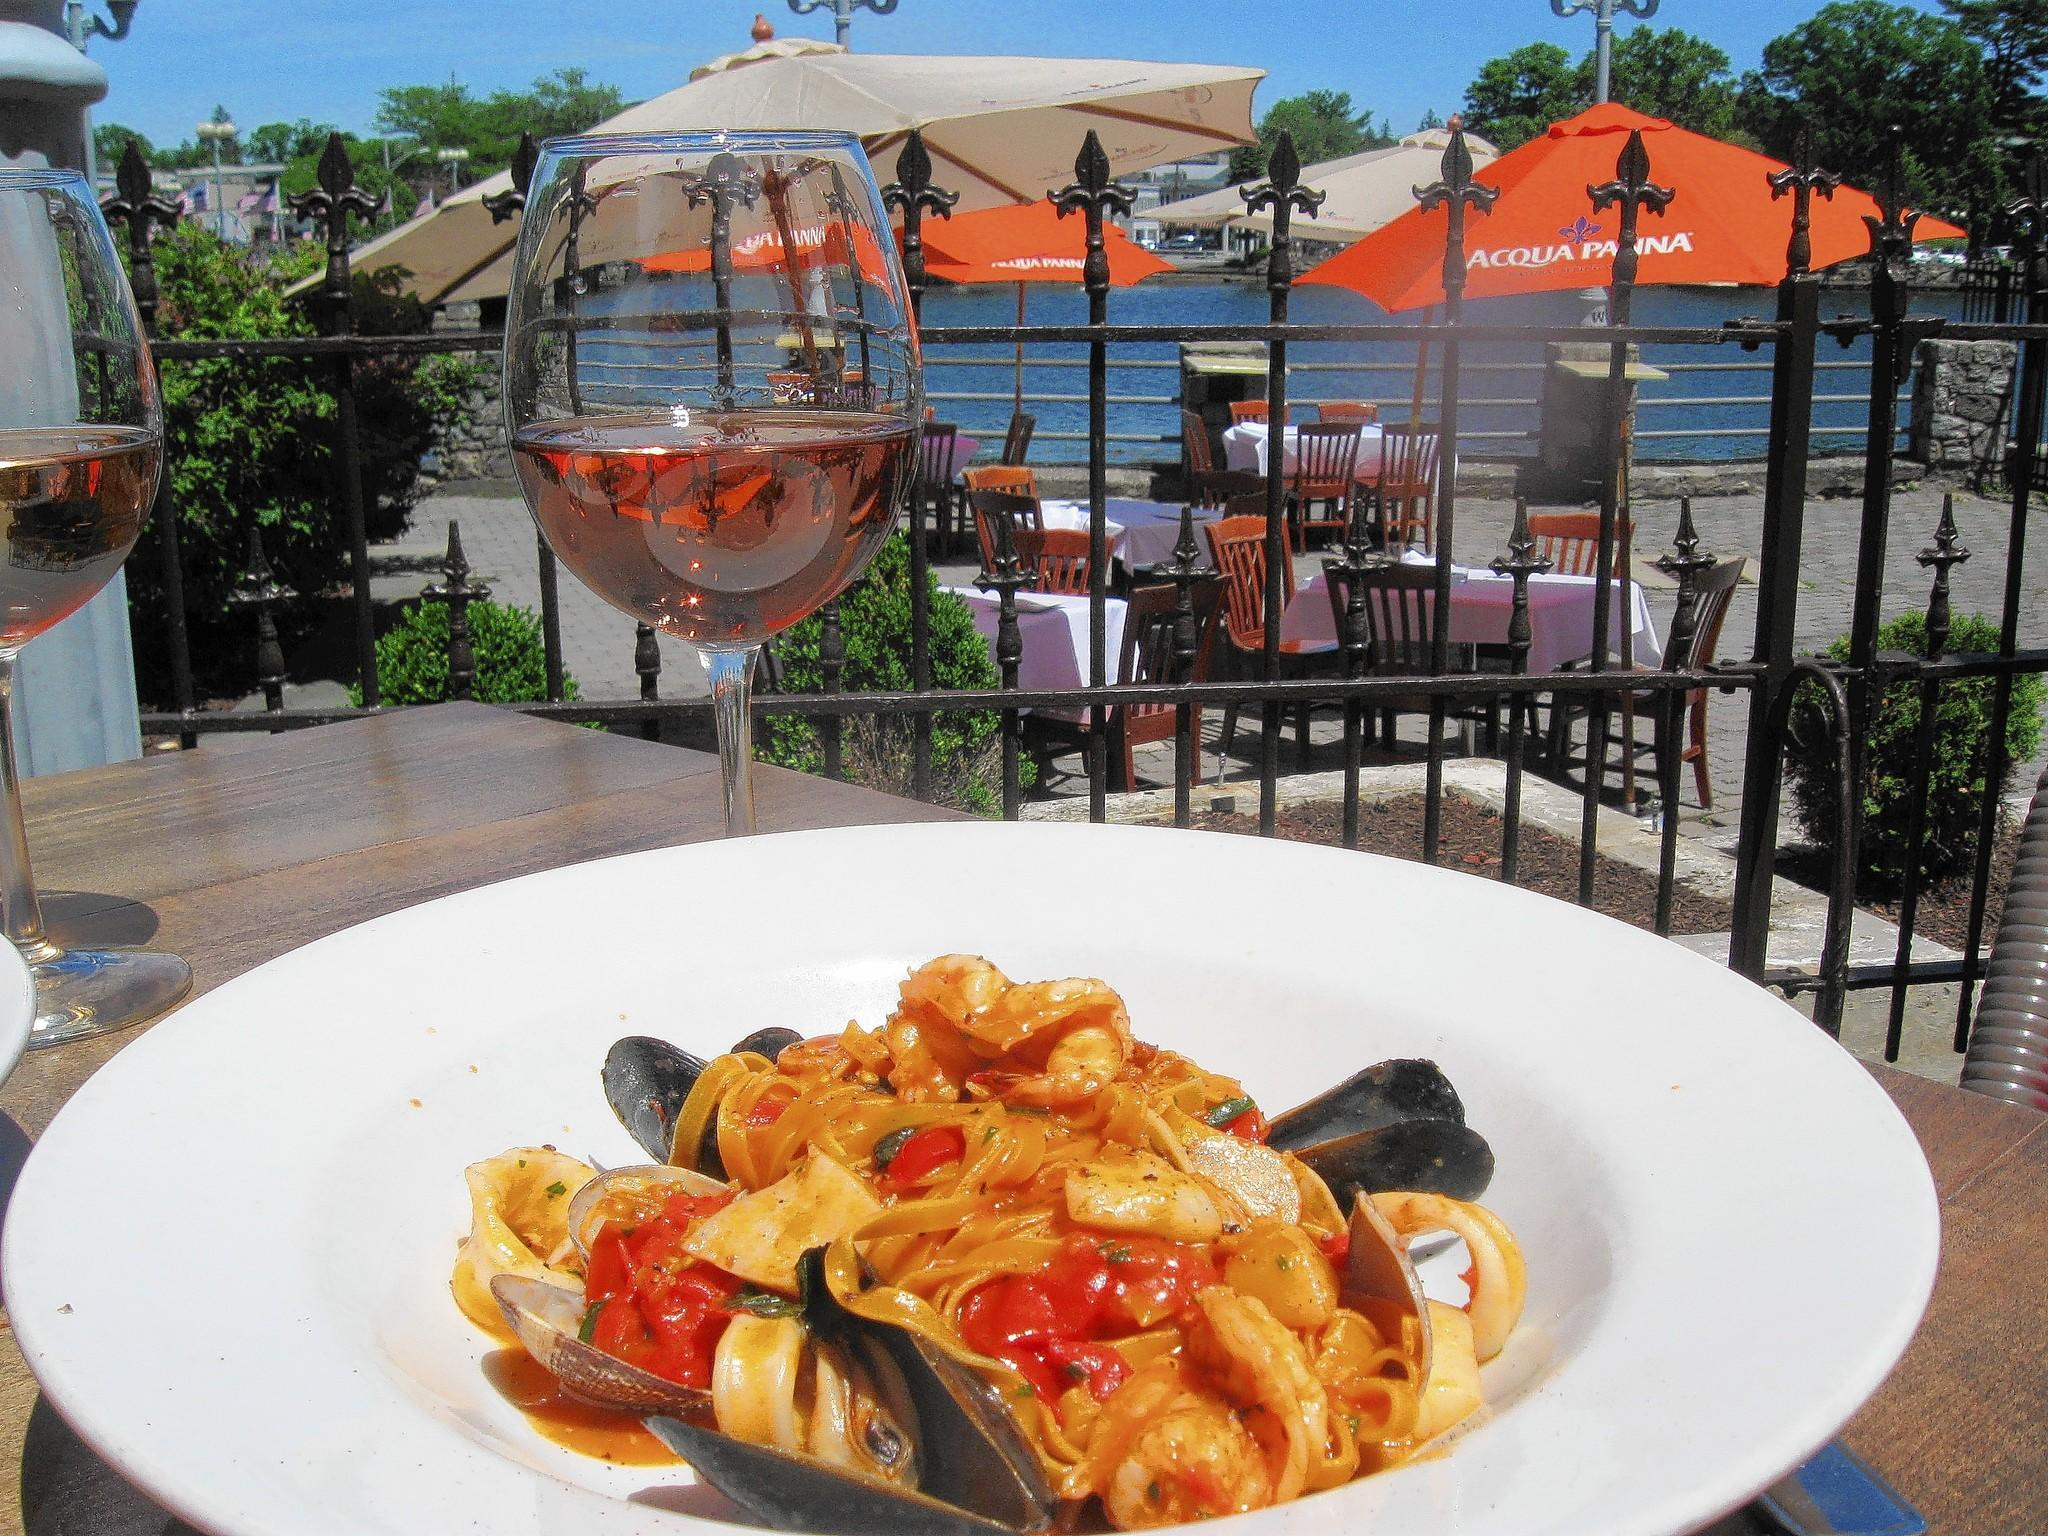 Tagliatelle with seafood: We were pleased with the texture of the long, twining noodles, just coated in fresh tomato sauce, with clams and mussels still juicy in their shells.